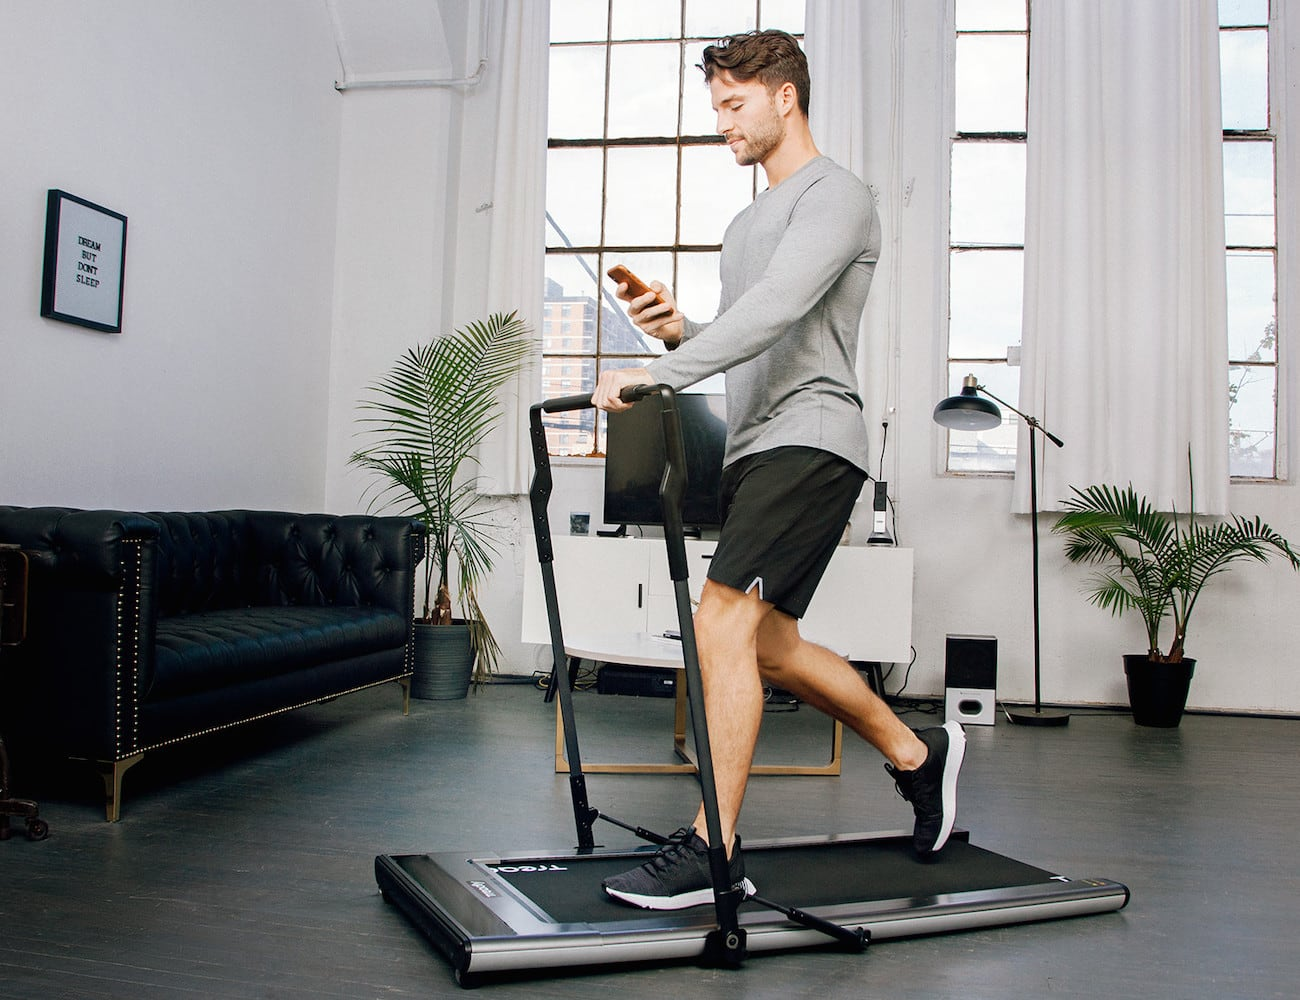 Treadly Ultra-Thin Compact Treadmill is only 3.5 inches thick